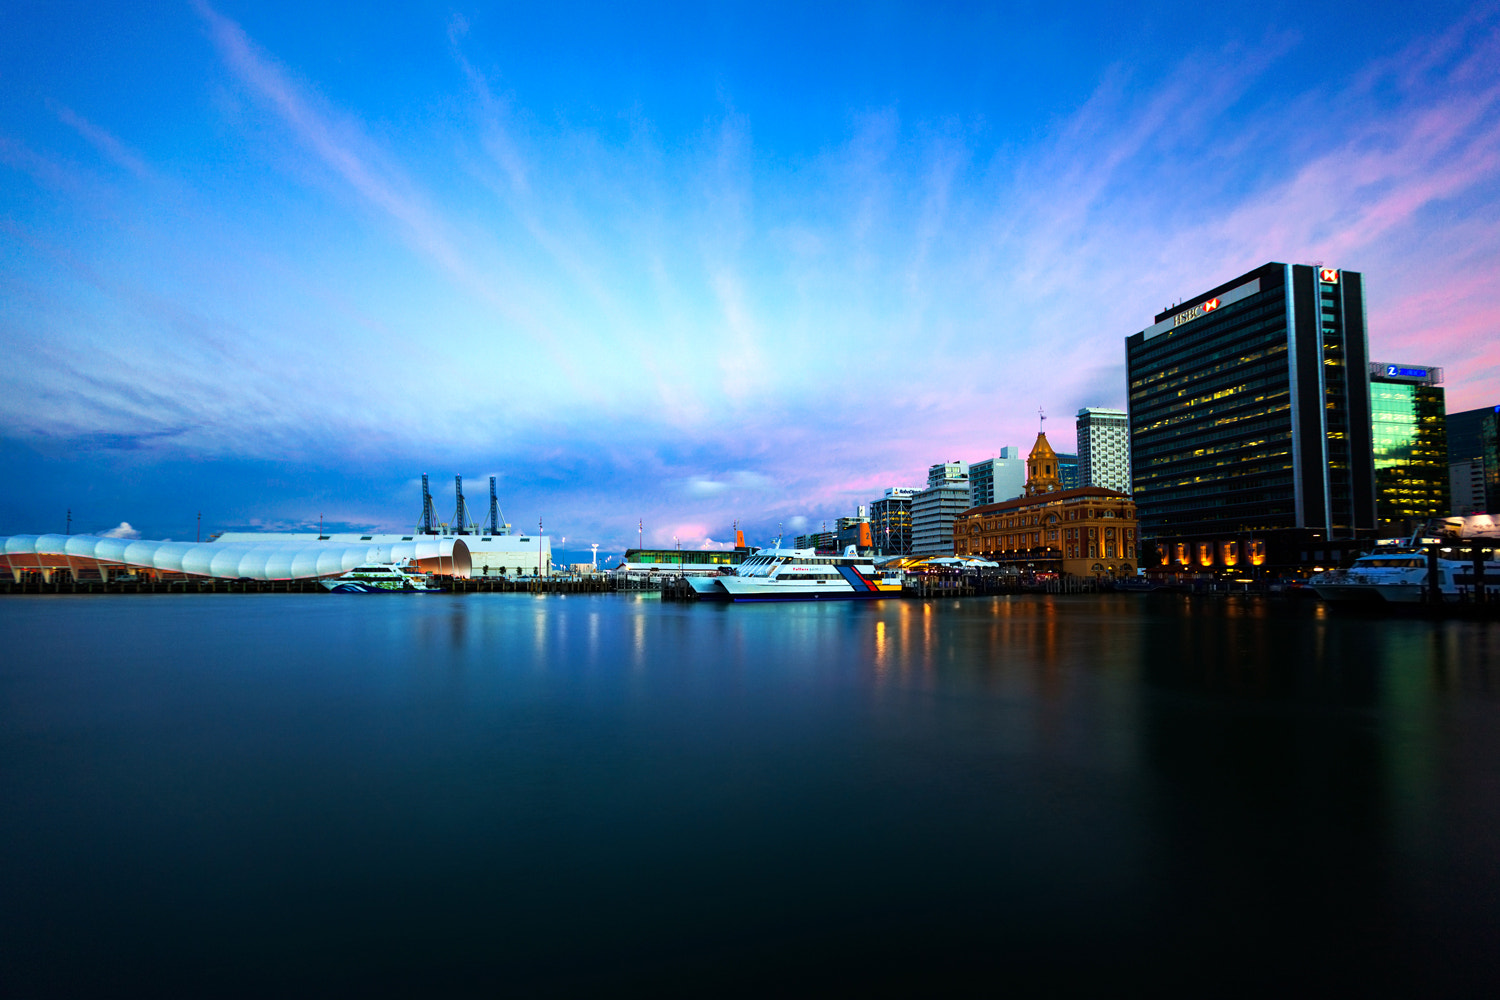 Photograph auckland by Dara Pilyugina on 500px